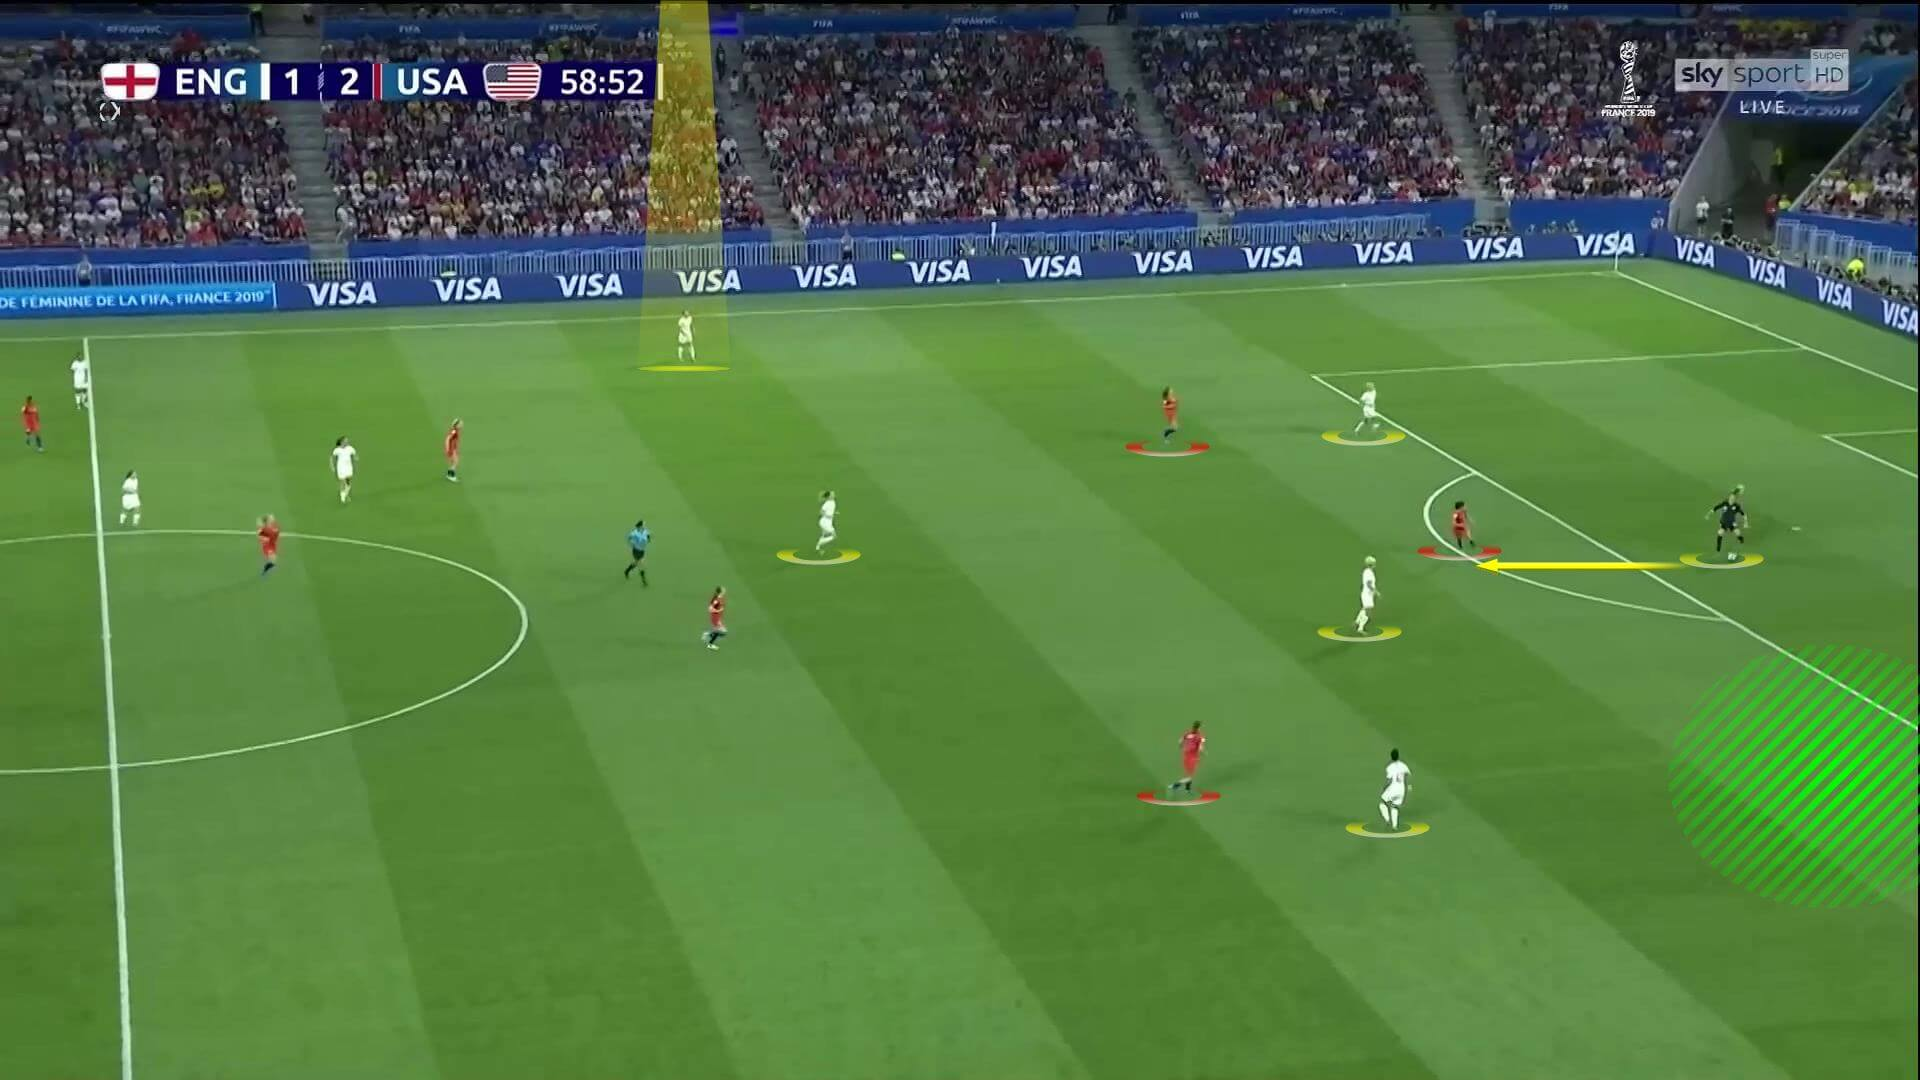 FIFA Women's World Cup 2019: England - tactical analysis tactics statistics